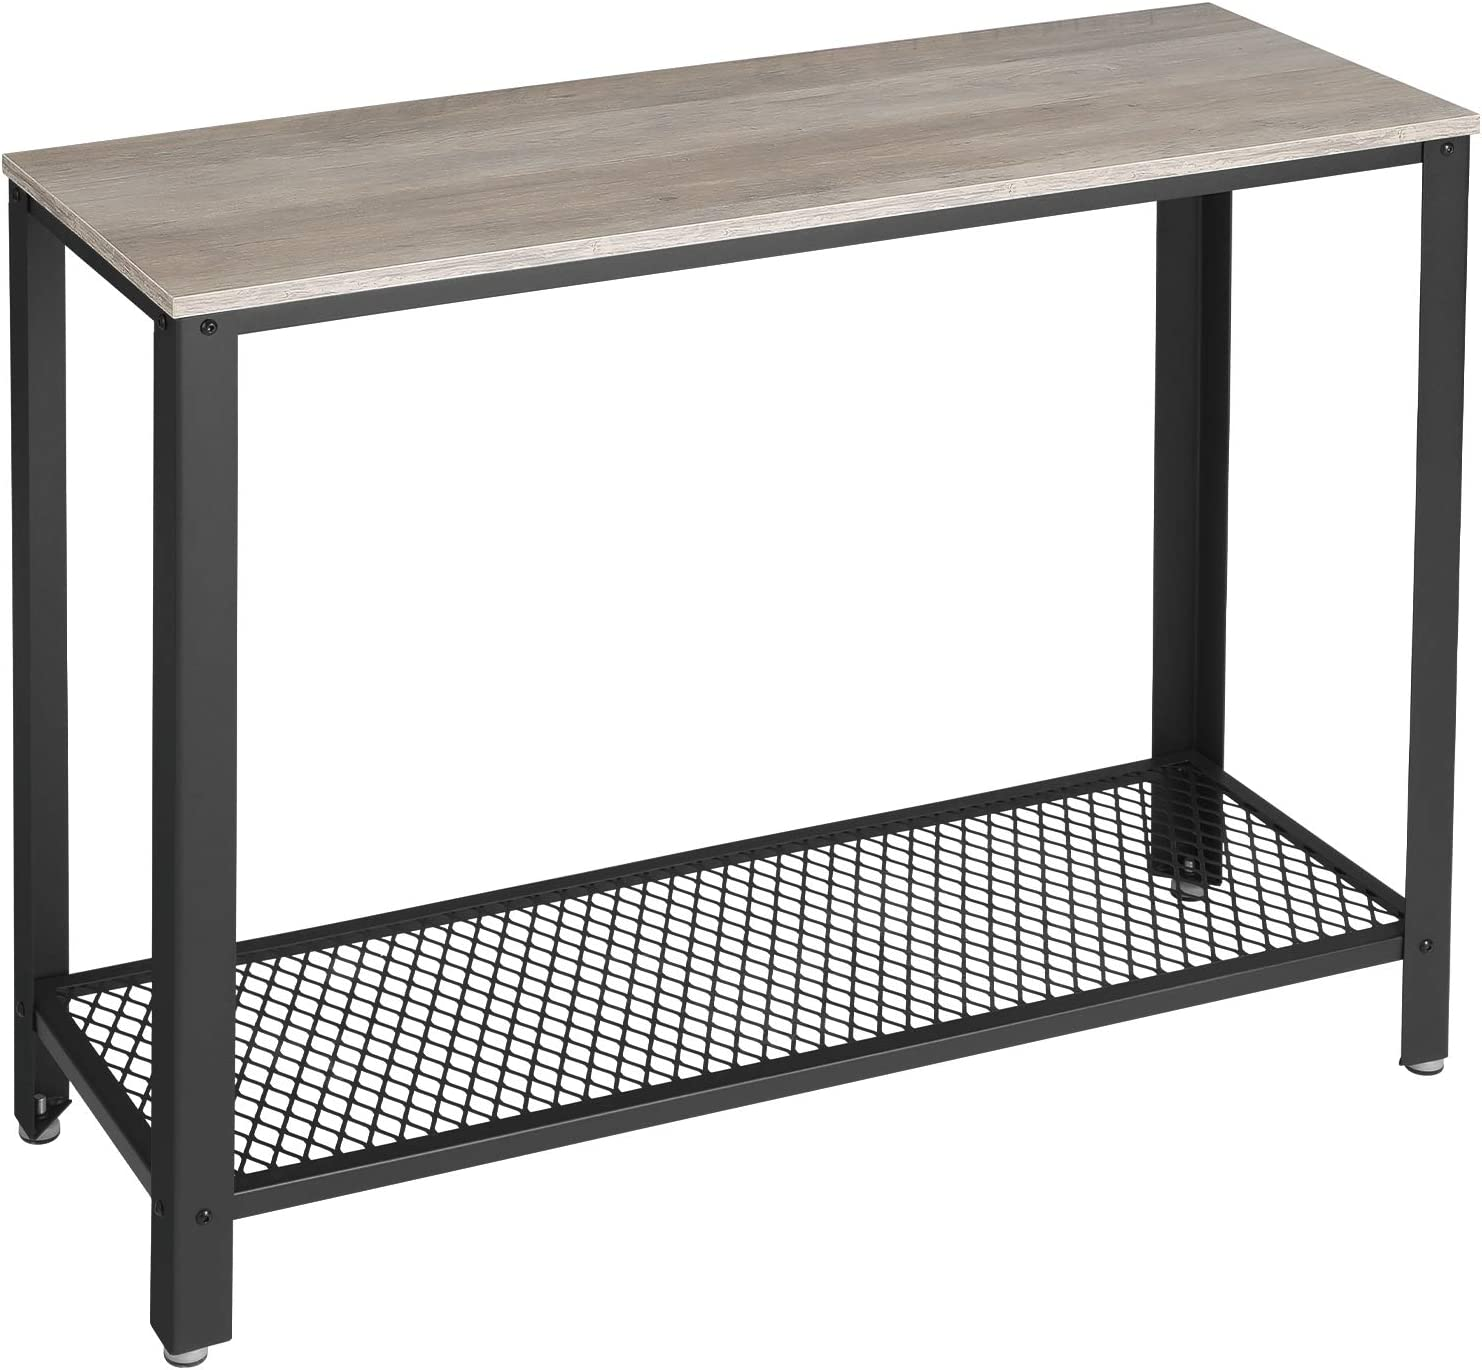 VASAGLE Console Table, 40'' x 13.8'' x 31.5'', Greige and Black